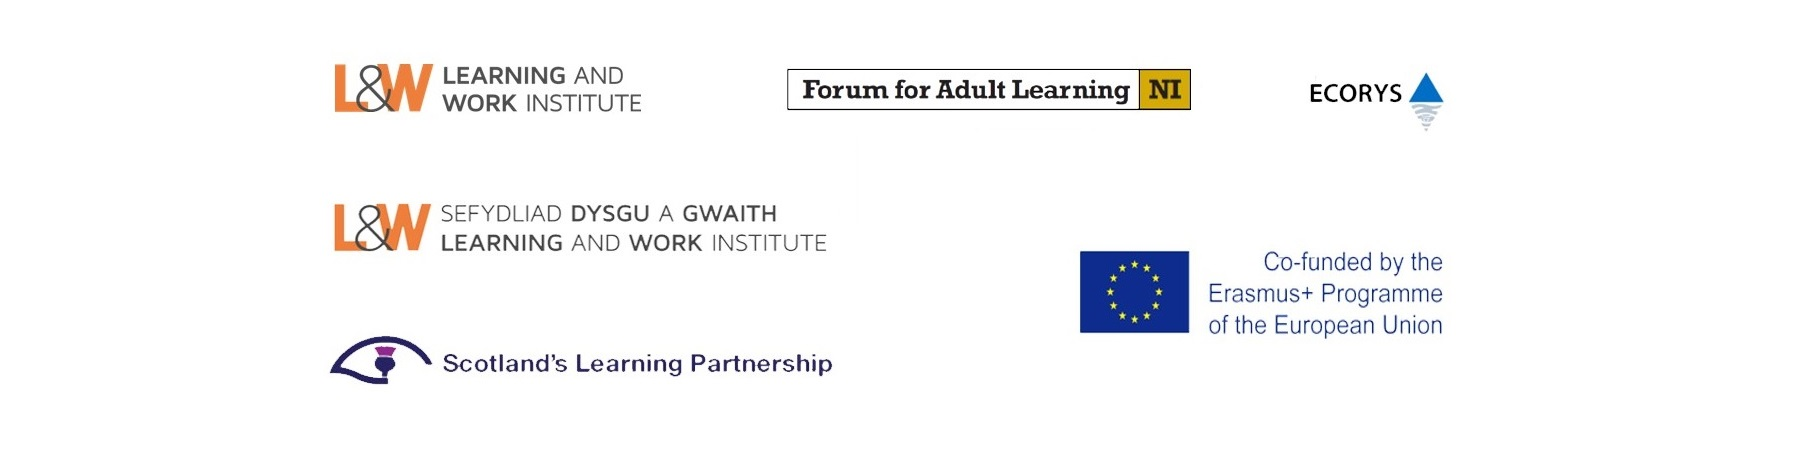 Institute for Learning and Work, Learning and Work | Sefydliad Dysgu a Gwaith, Scotland's Learning Partnership, Forum for Adult Learning NI, Ecorys, Co-funded by the Erasmus+ Programme of the European Union